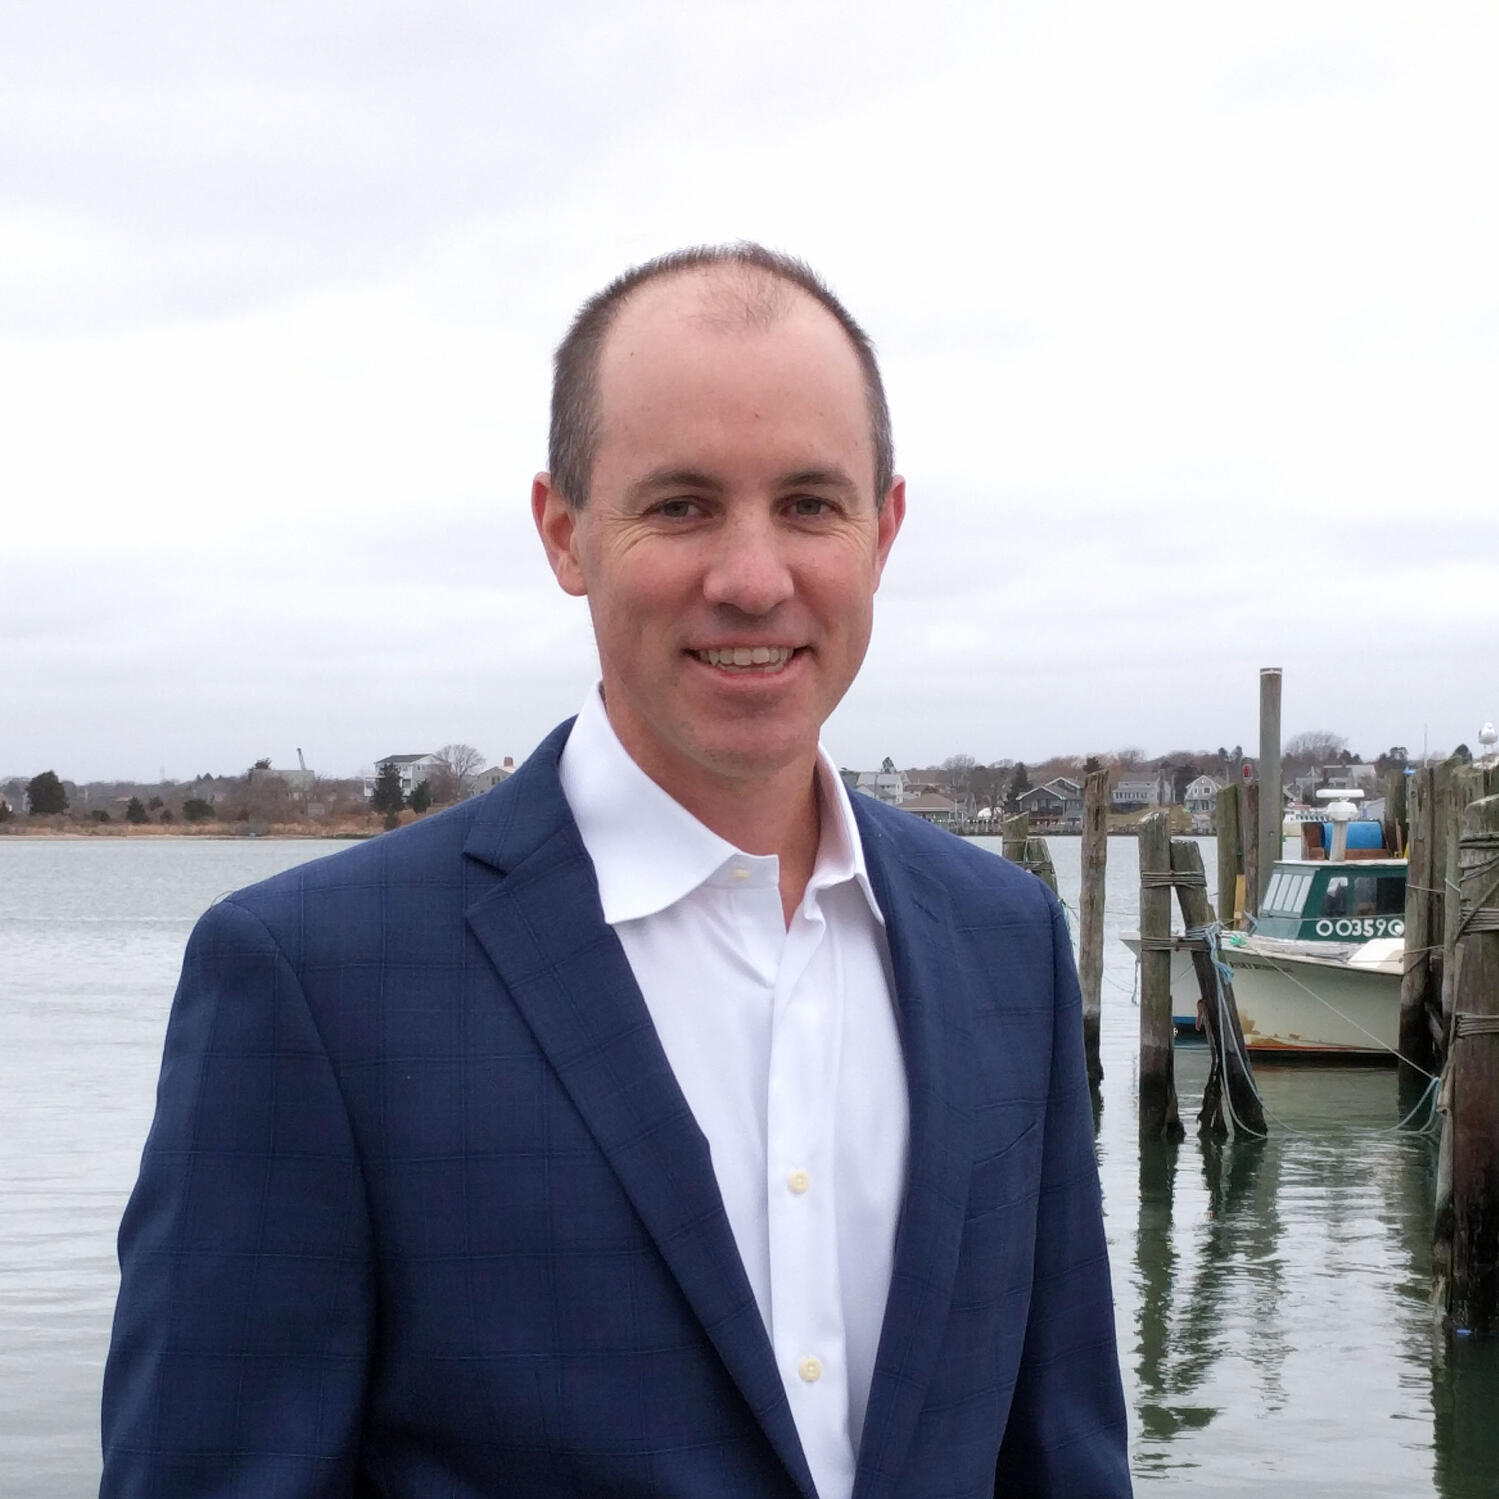 The Town Dock CEO Joins National Fisheries Institute's Board of Directors